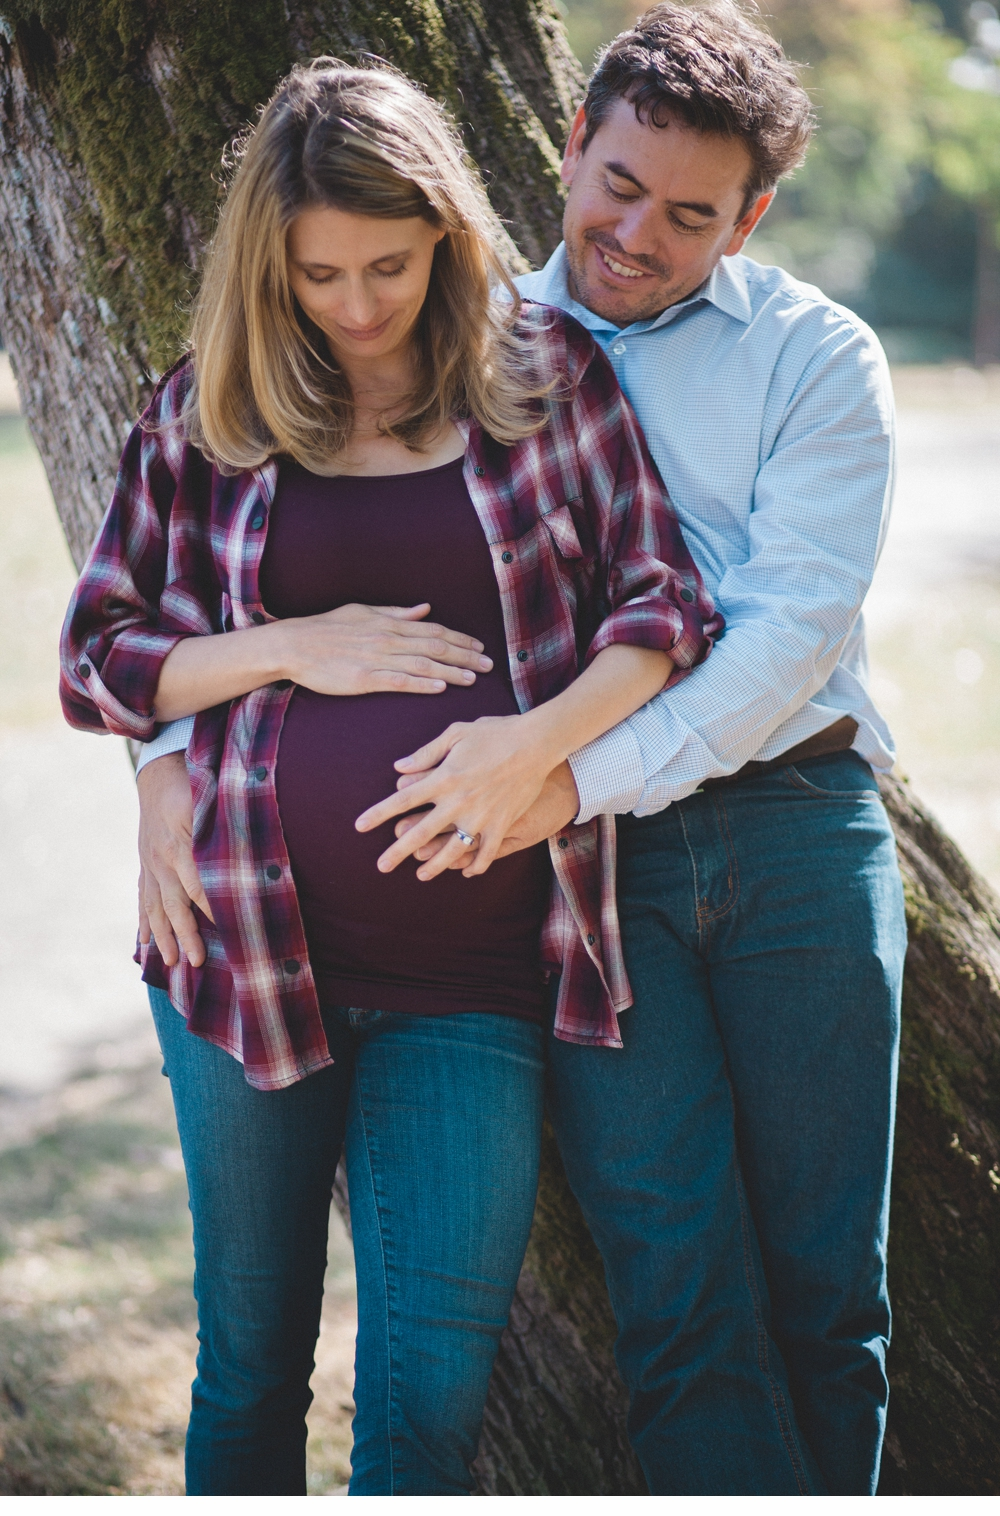 Seattle_Maternity_lifestyle_portrait_session_Seward_Park 16.jpg